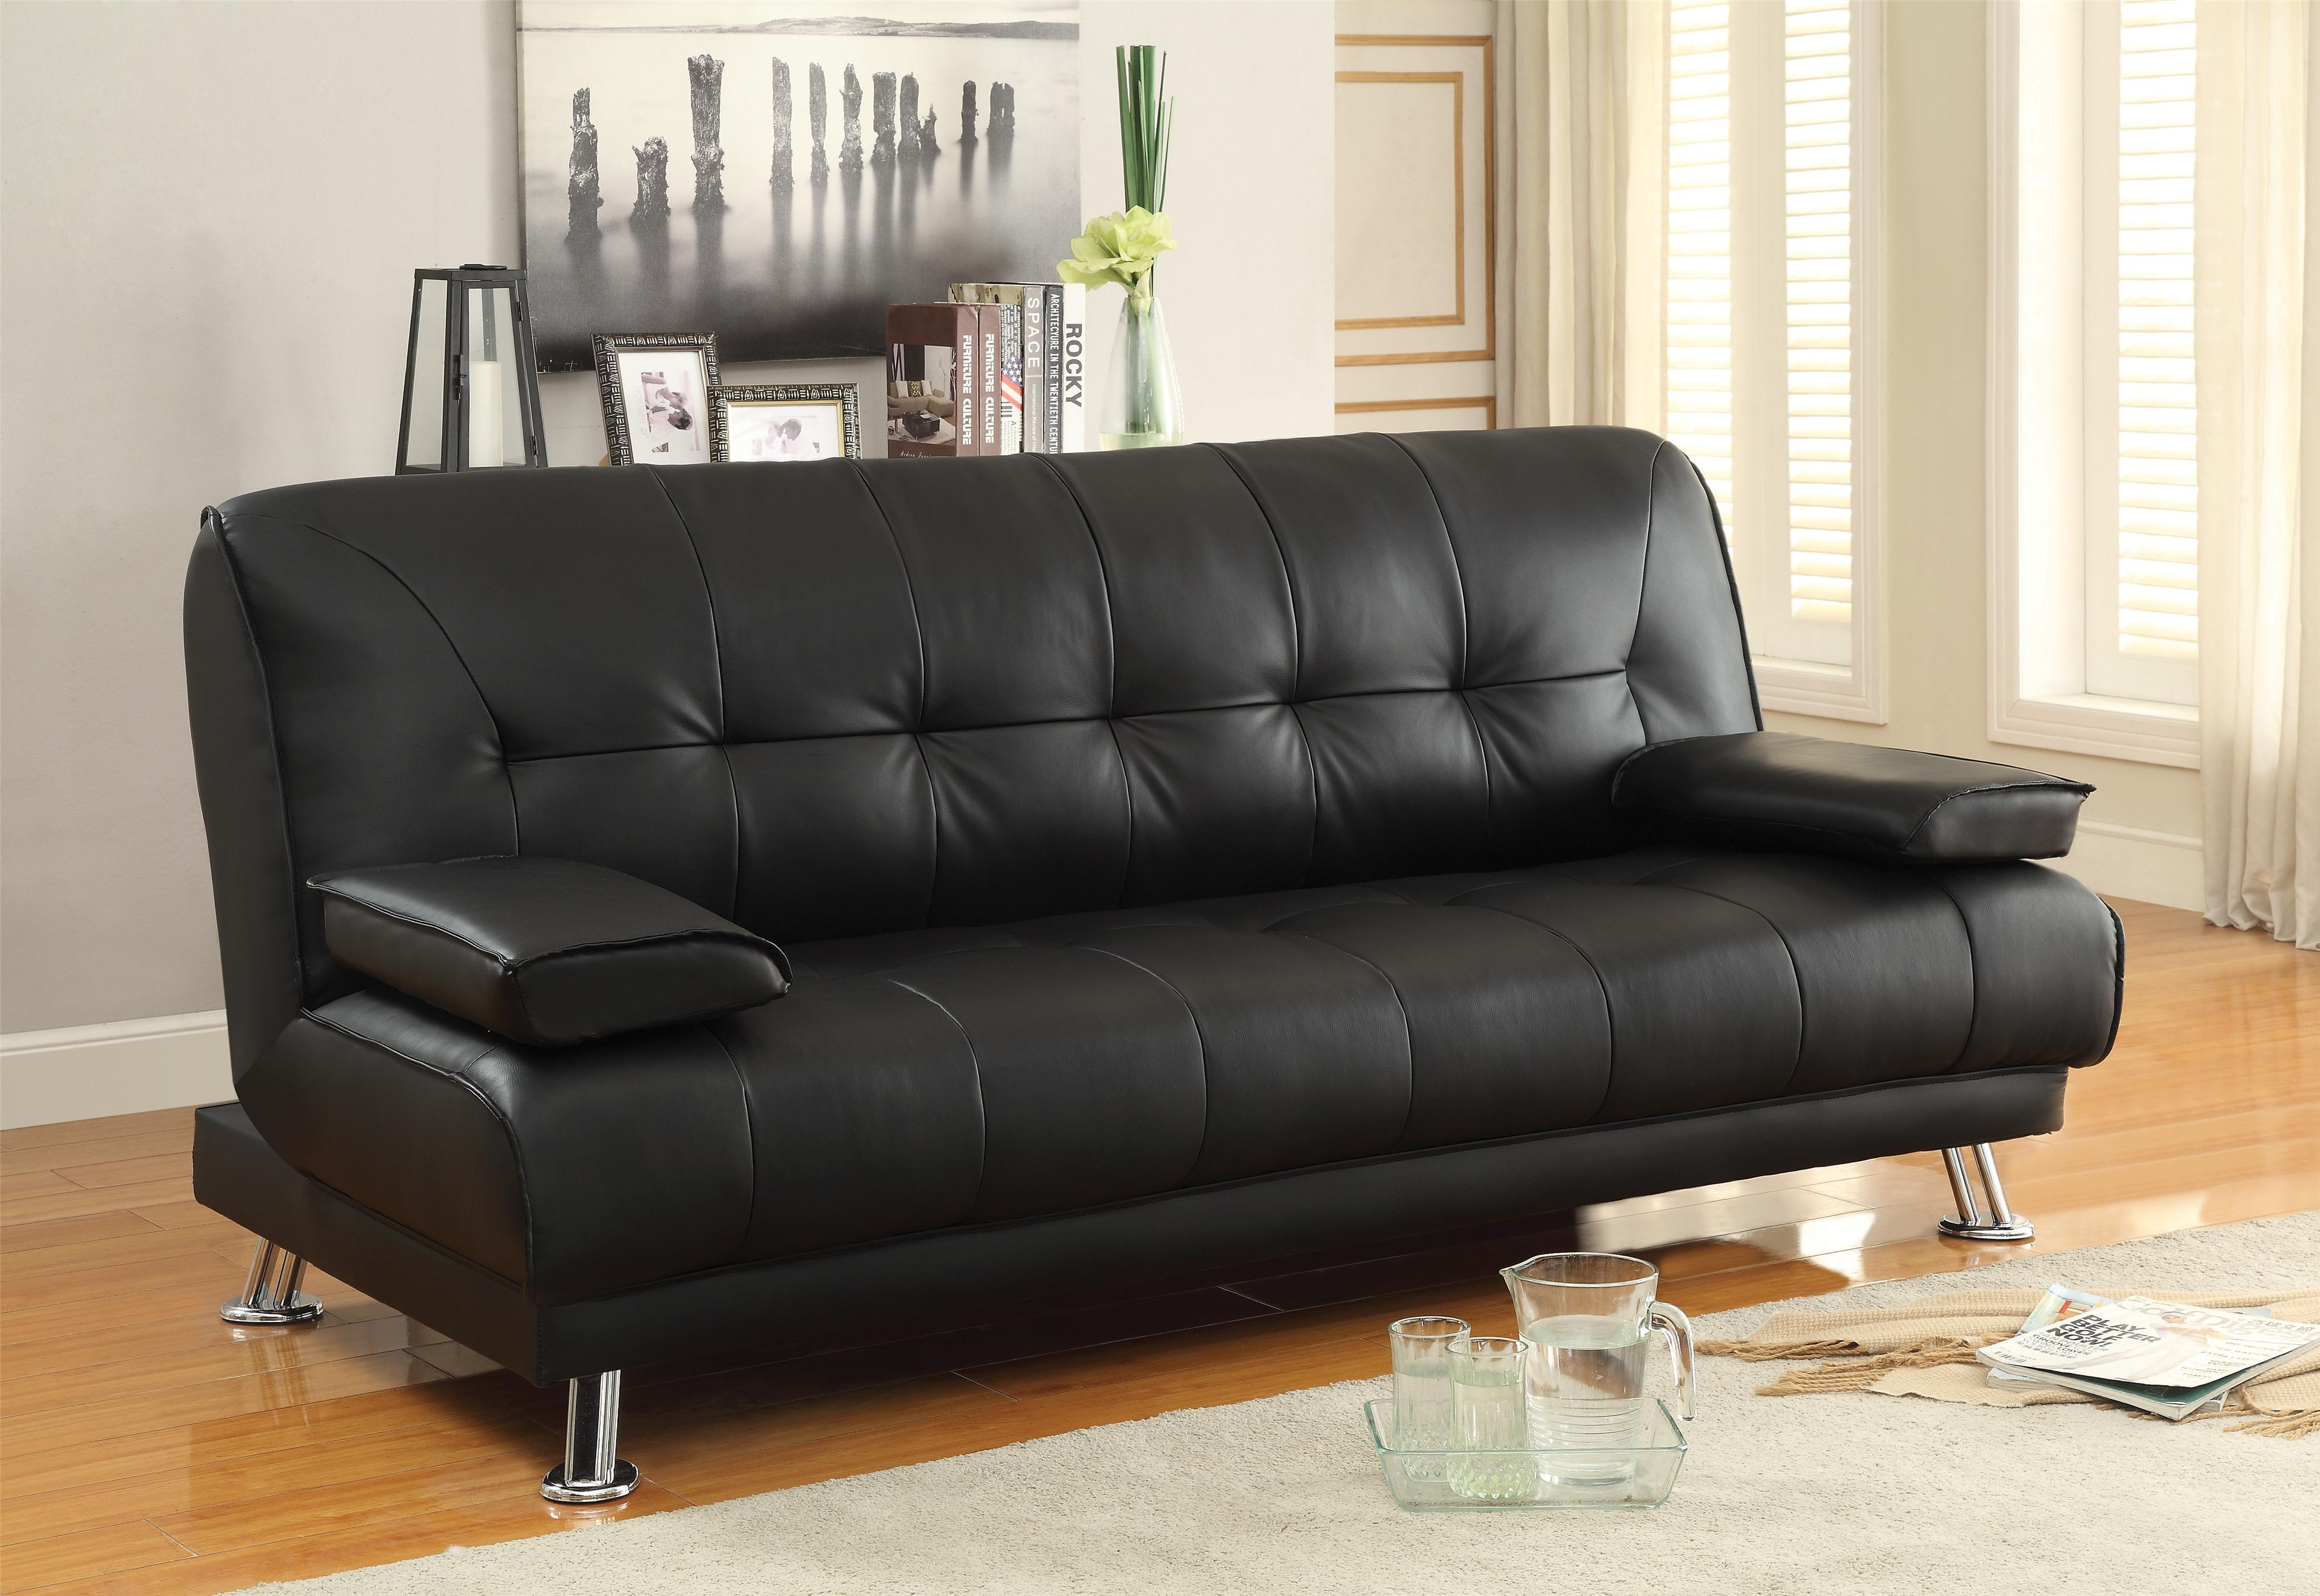 Sofa beds and futons faux leather convertible sofa bed with removable armrests quality Couch and bed